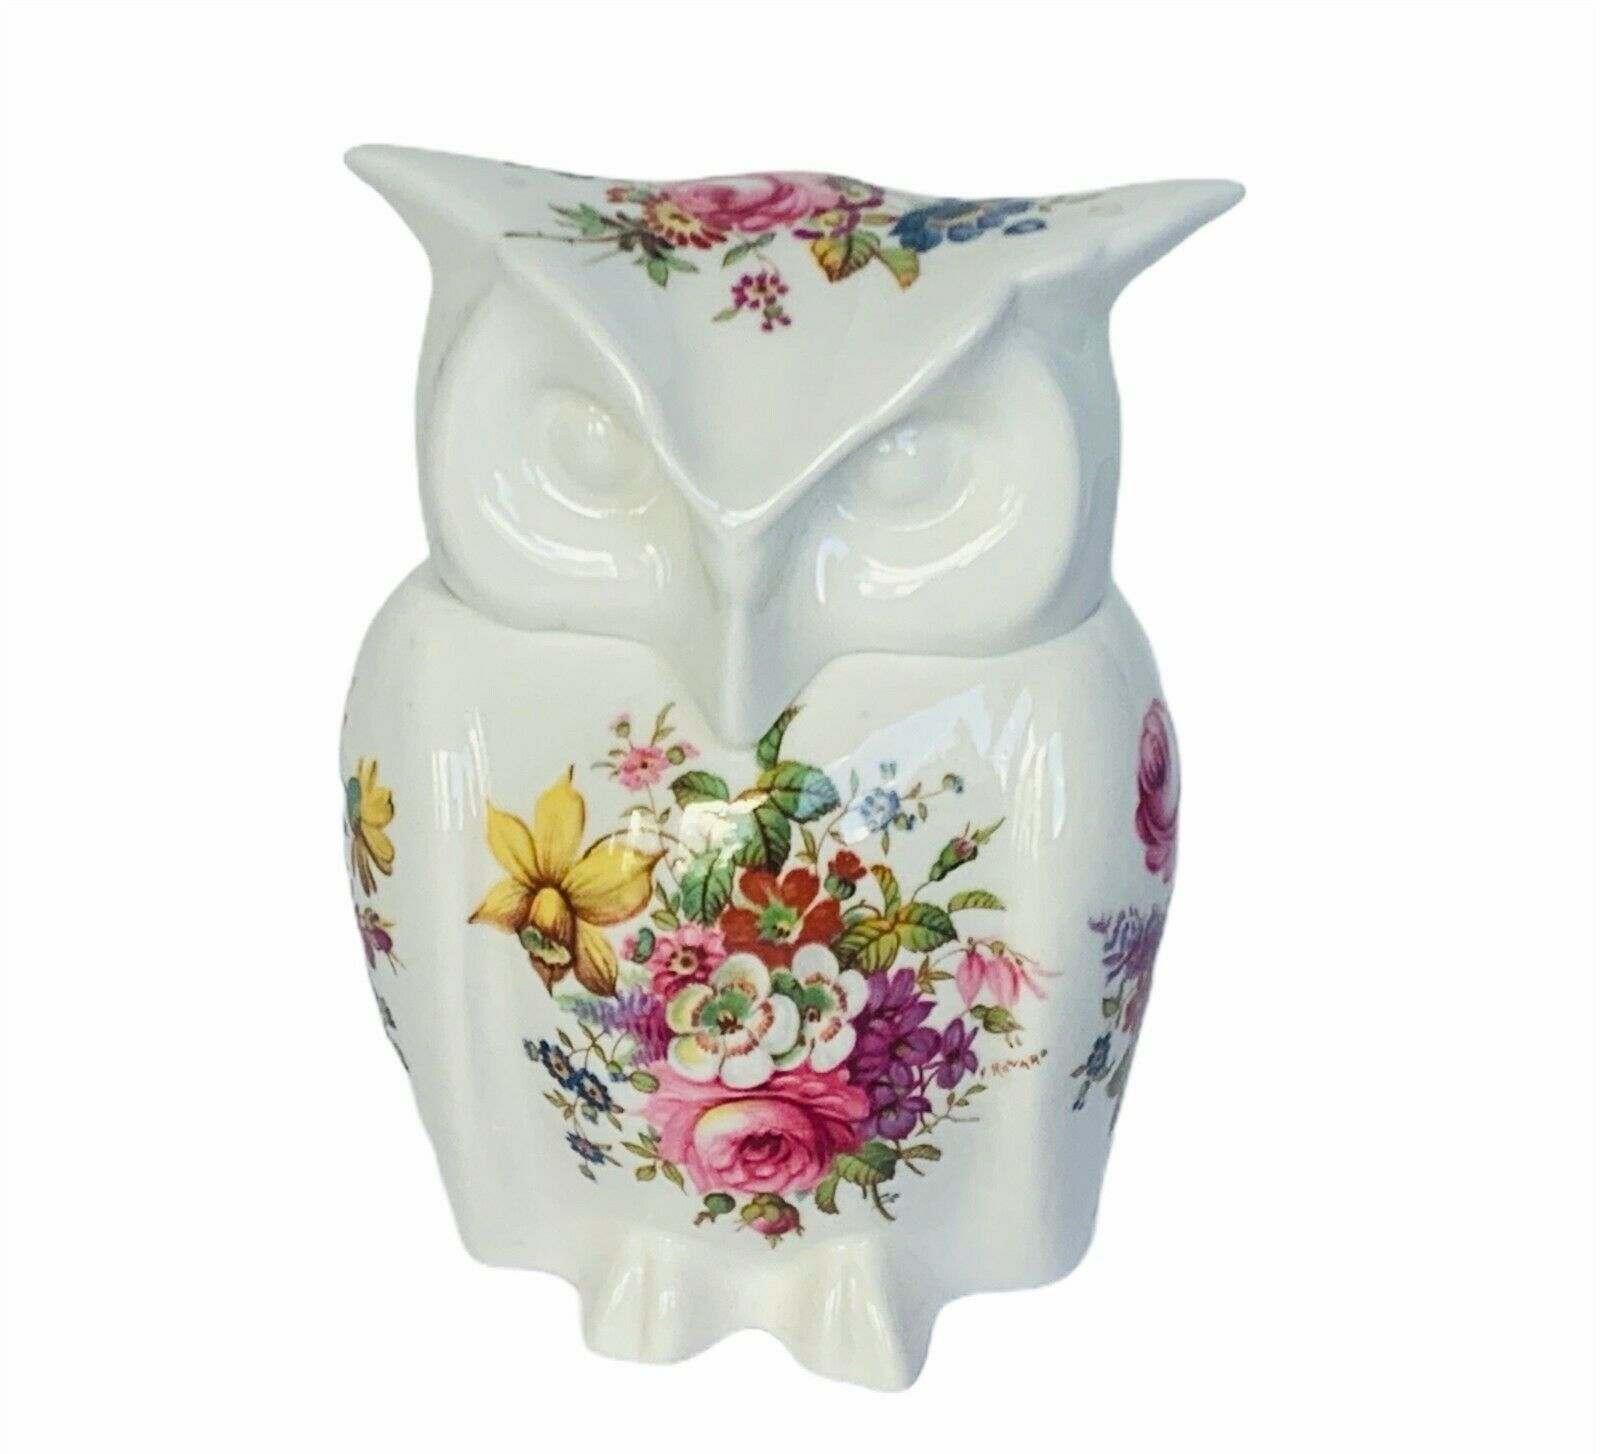 Primary image for Owl figurine vtg sculpture Hammersley England floral box lid roses daisy spring